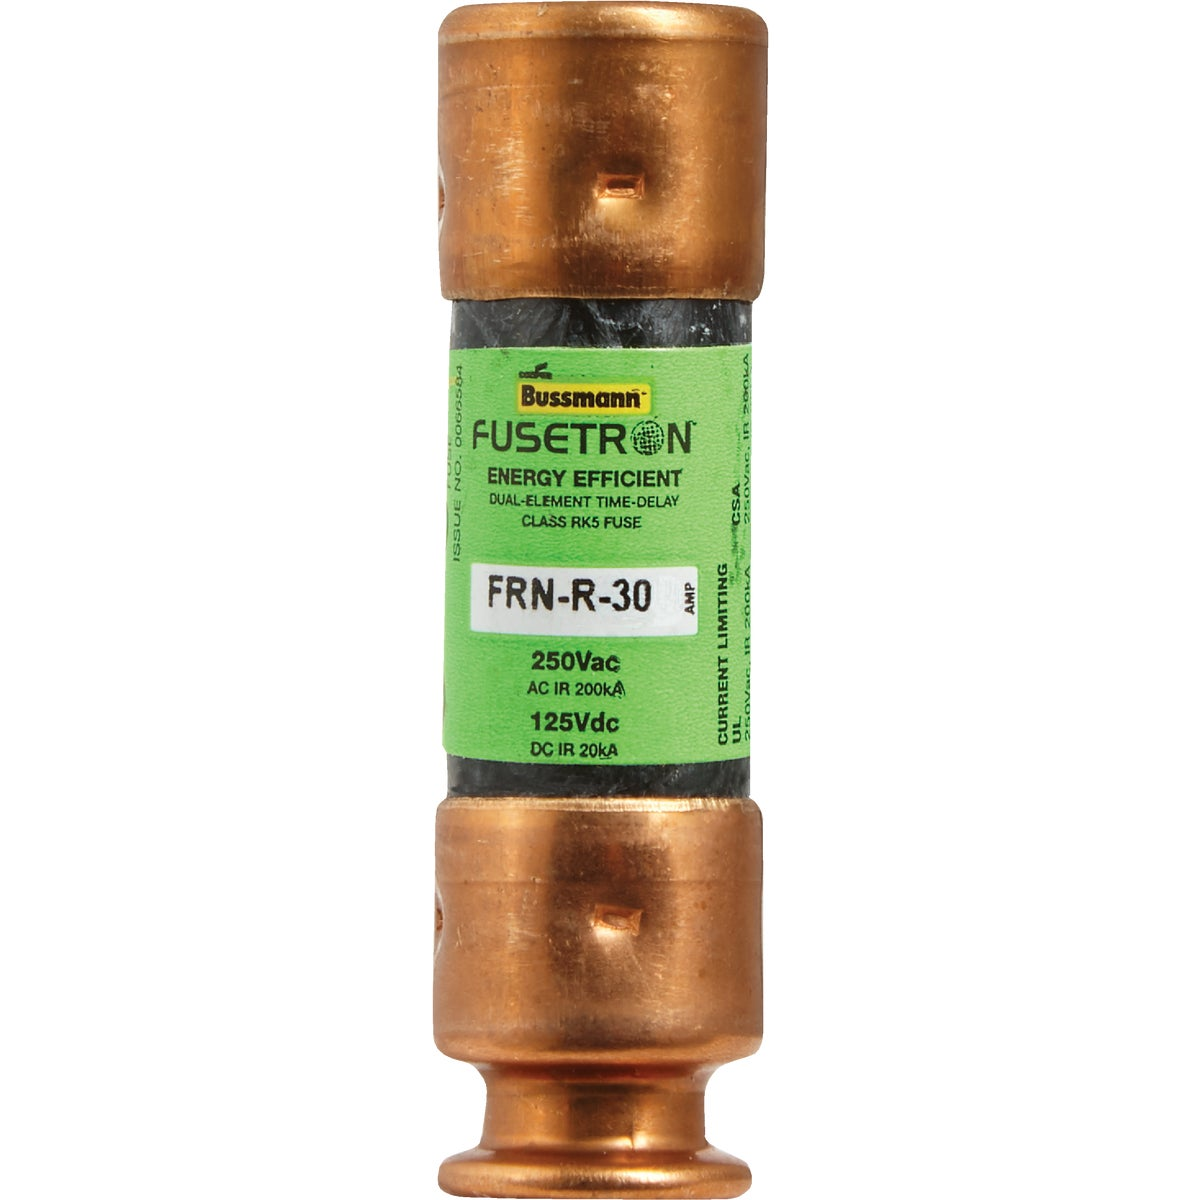 30A CARTRIDGE FUSE - FRN-R-30 by Bussmann Cooper